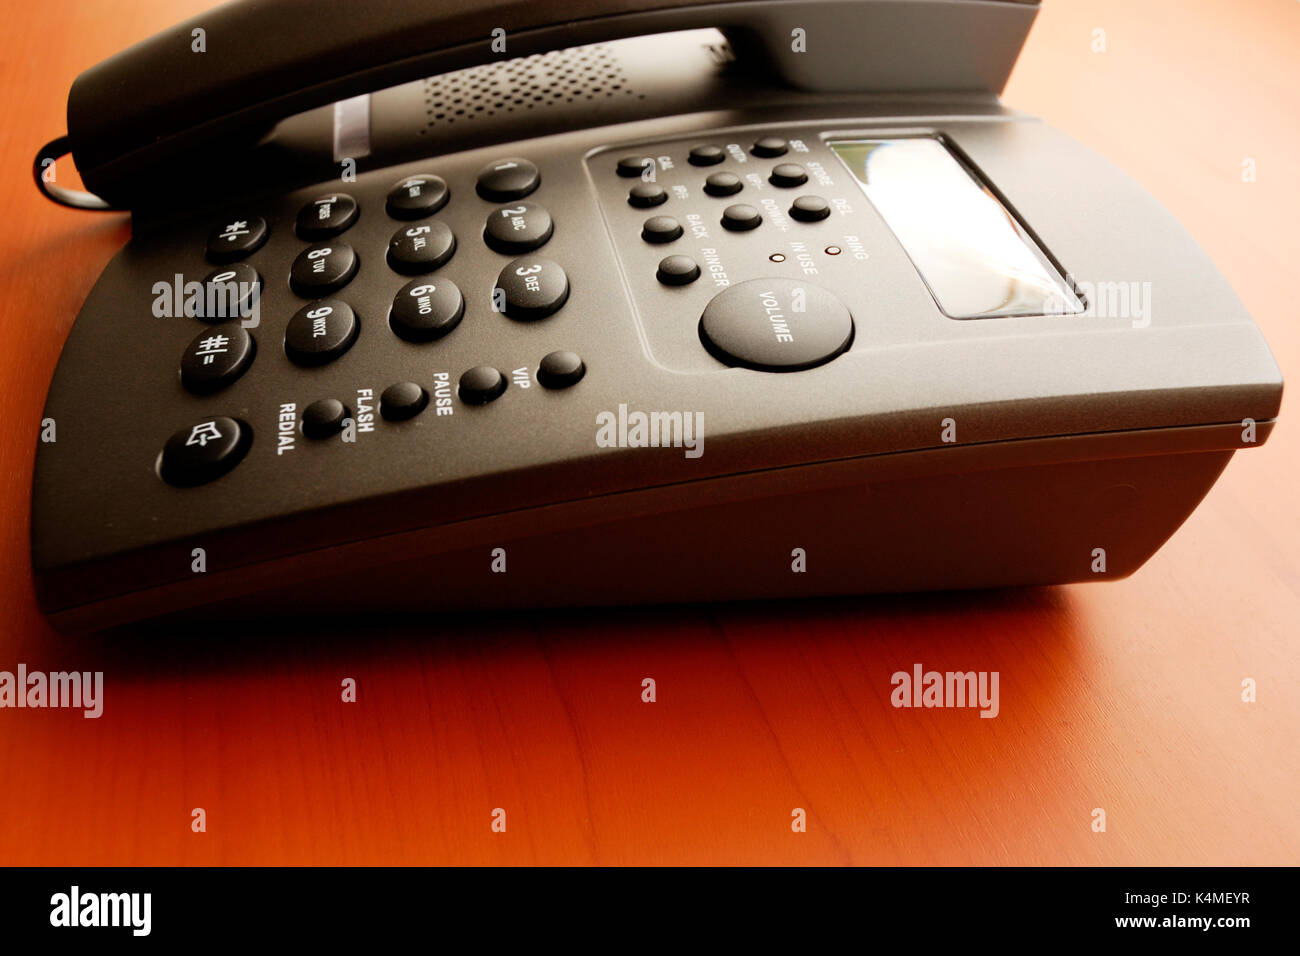 modern desk conference telephone - Stock Image